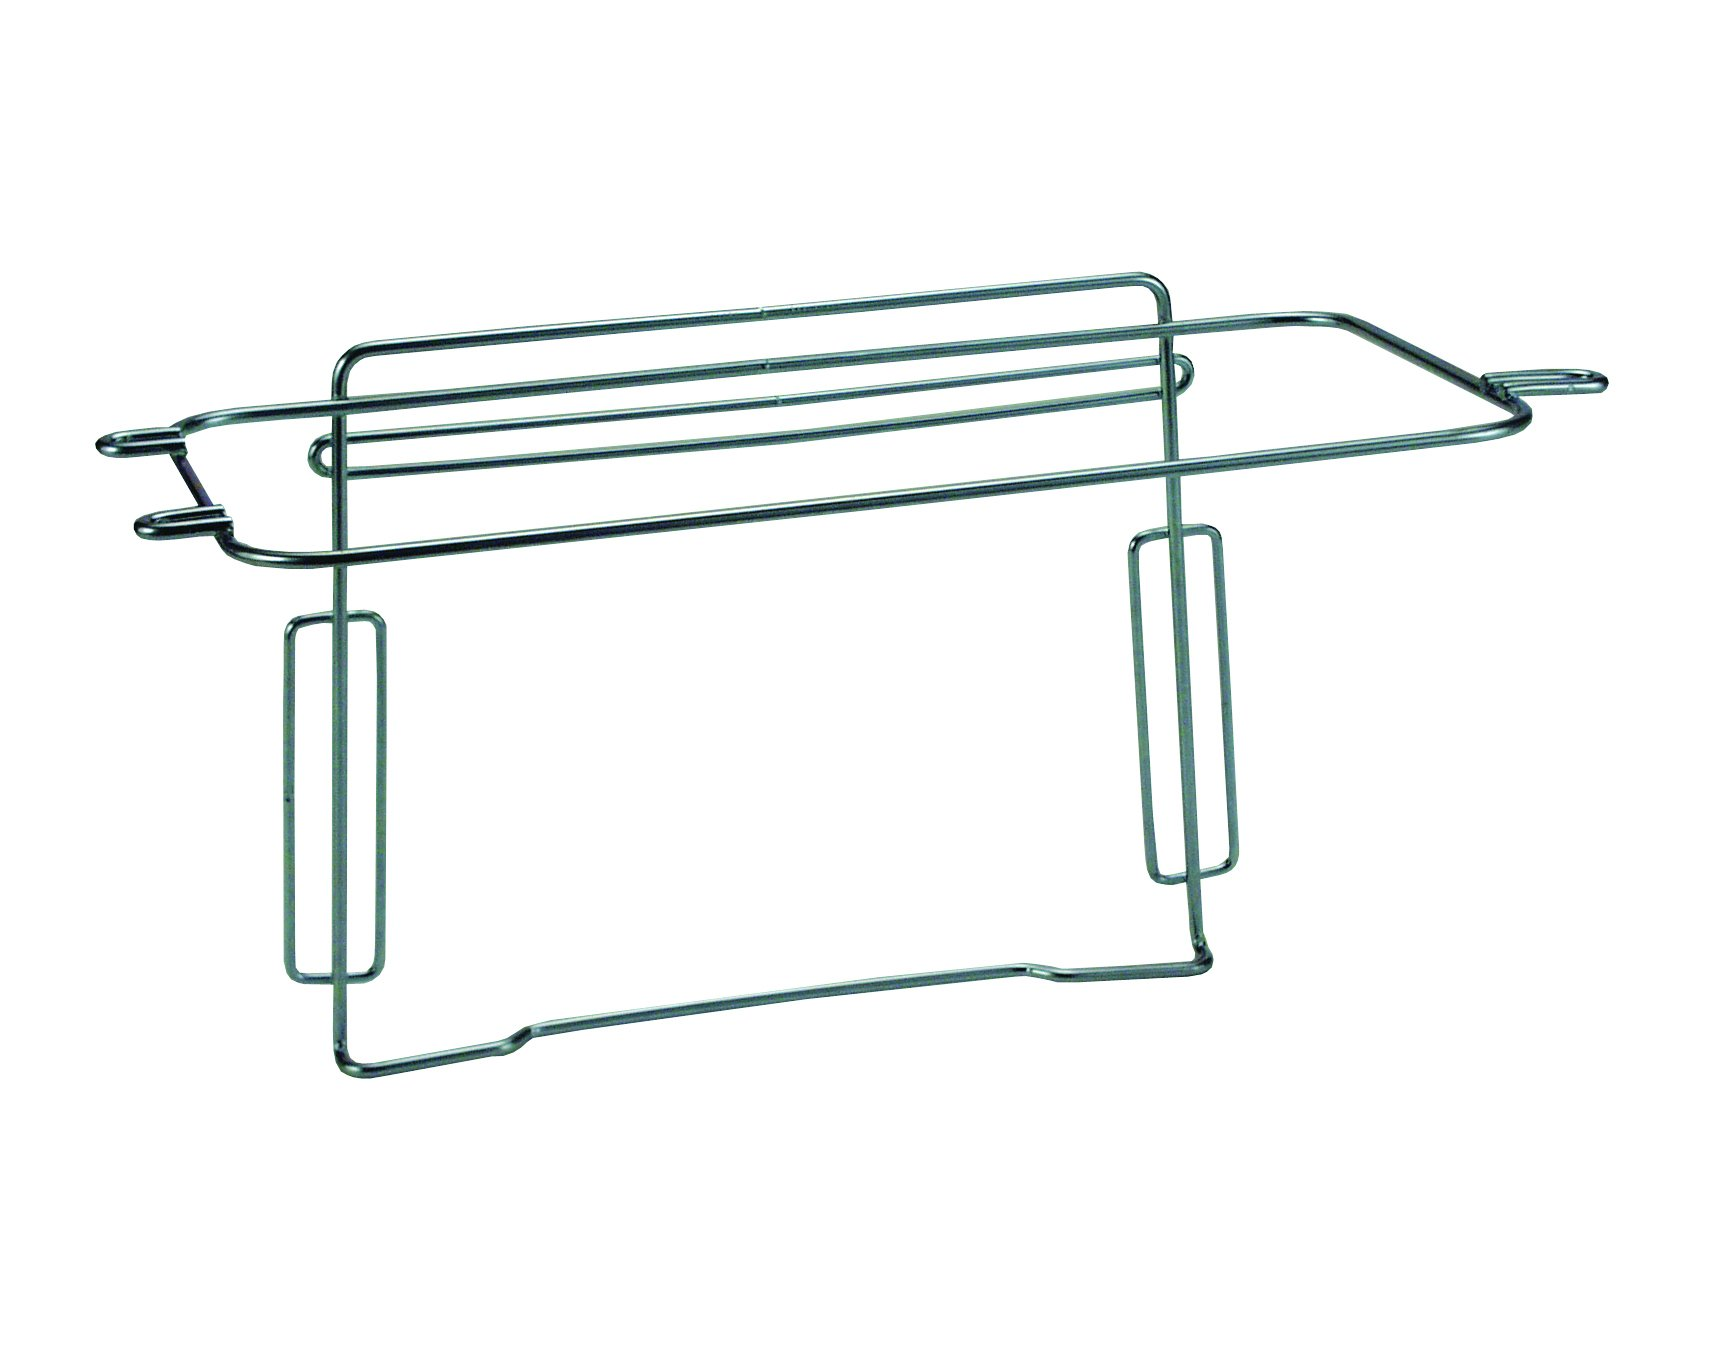 Bemis Healthcare 423000-5 Non-Locking Wire Bracket for 3 gal Sharps Containers (Pack of 5)